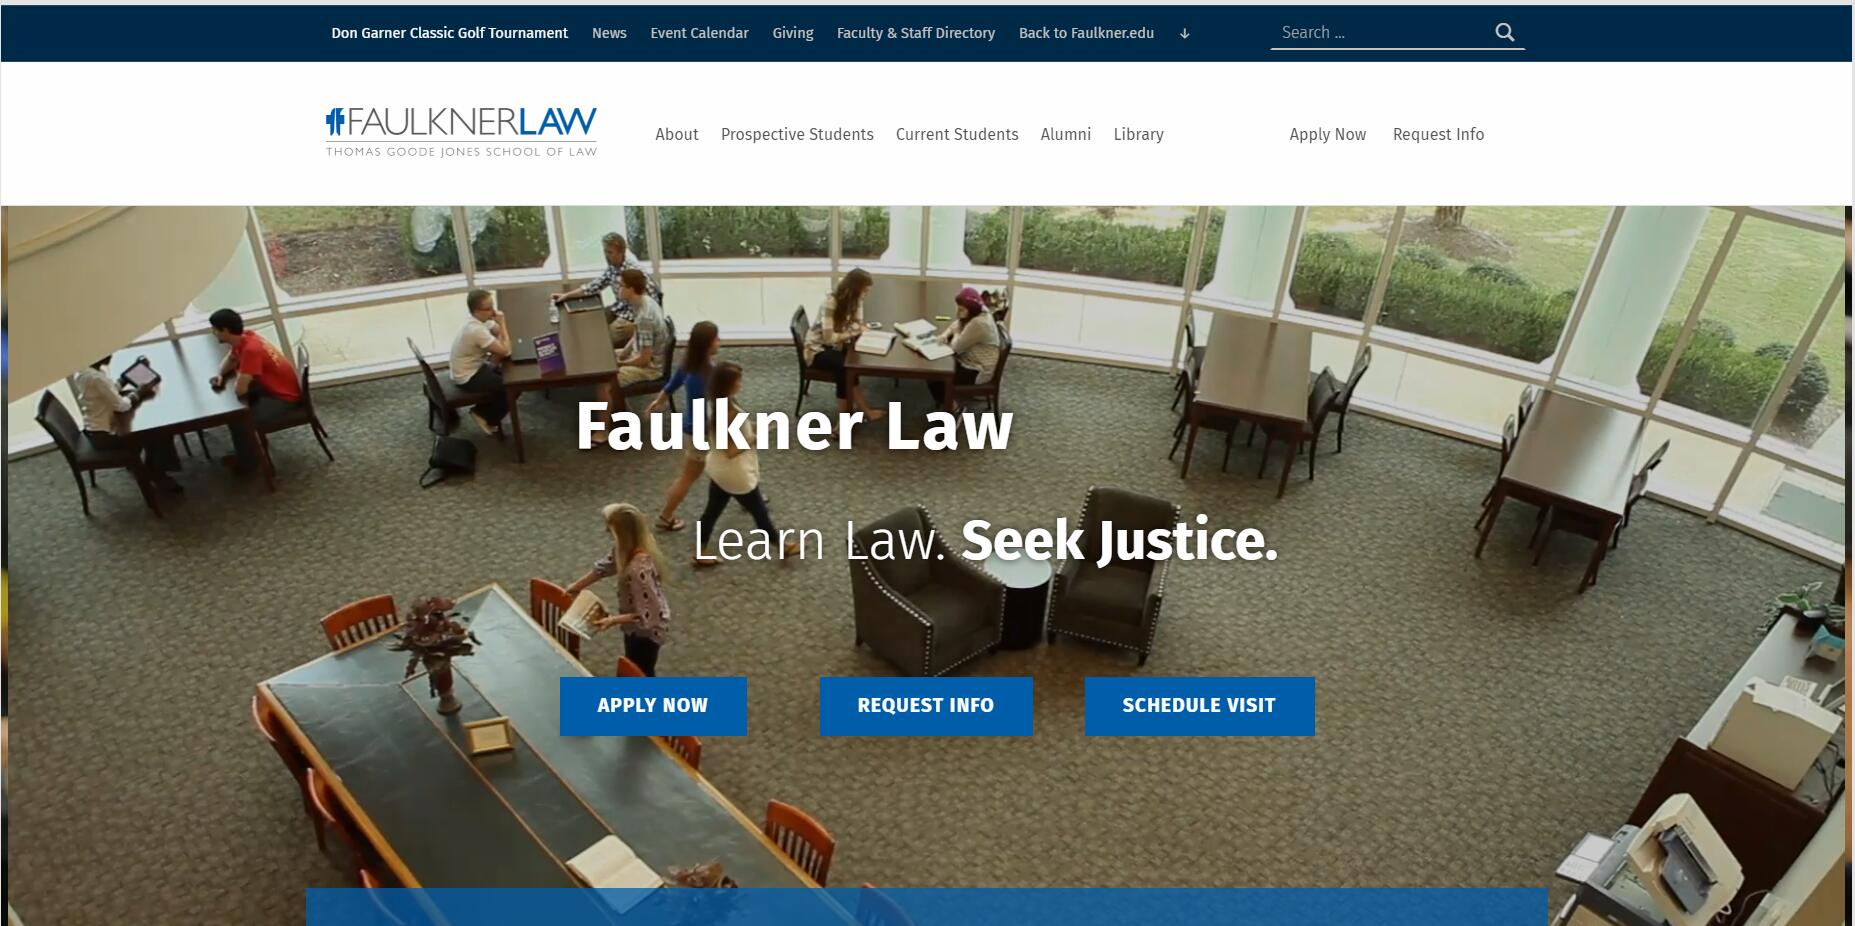 The Thomas Goode Jones School of Law at Faulkner University